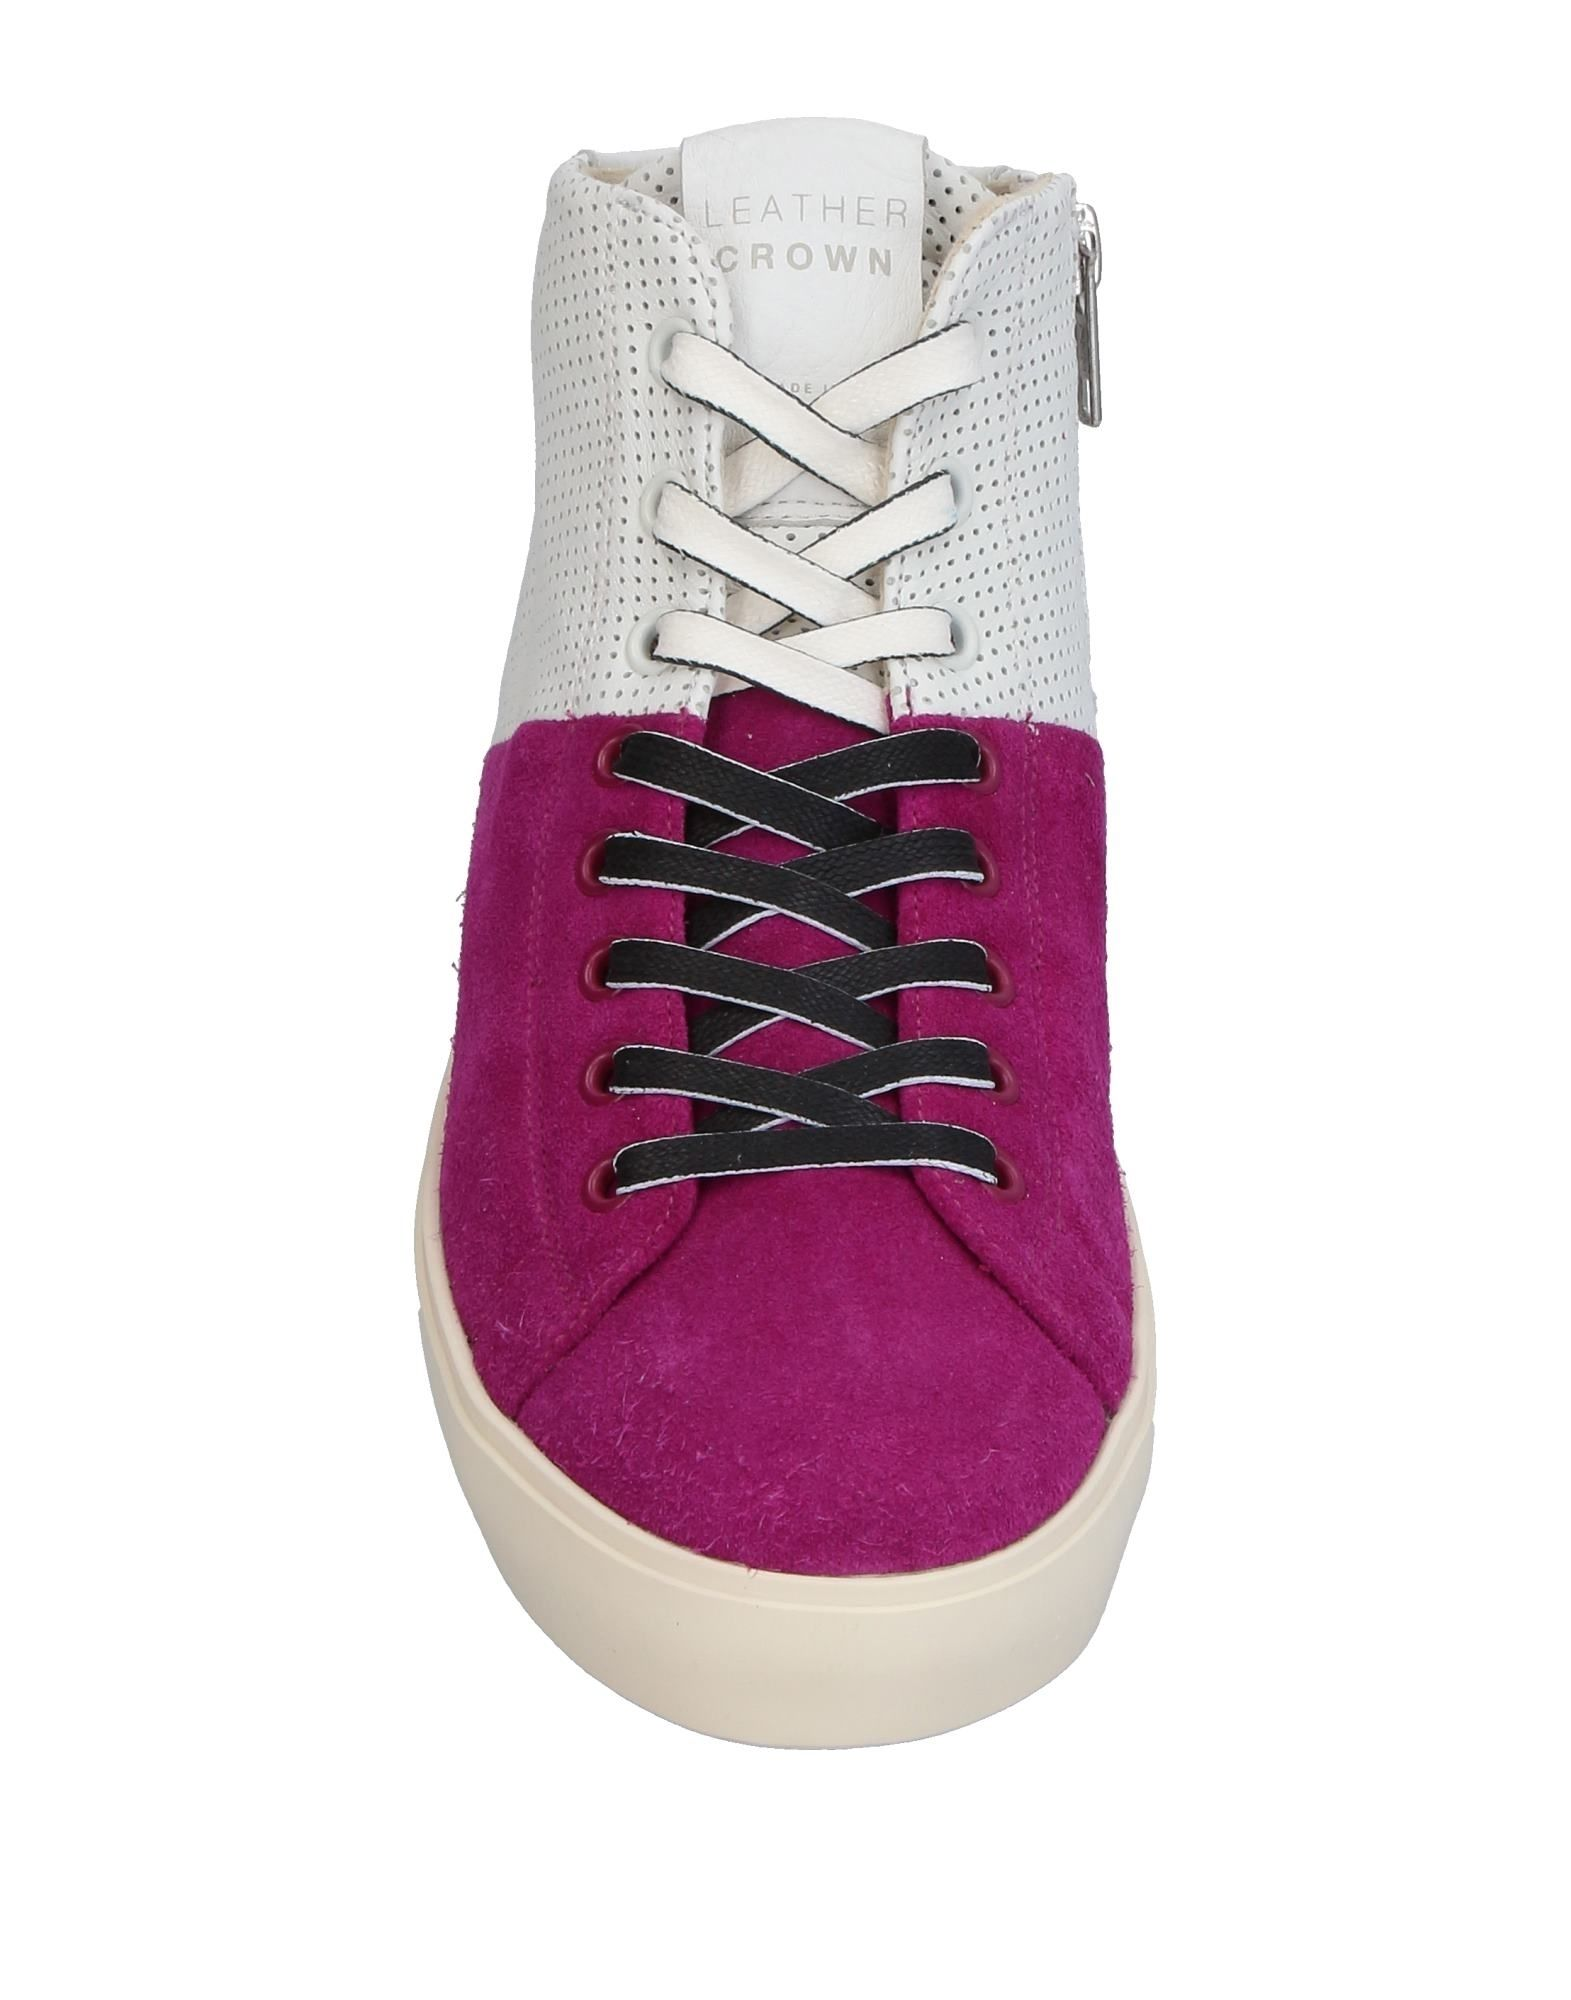 Sneakers Leather Crown Crown Crown Donna - 11395166SP f04690